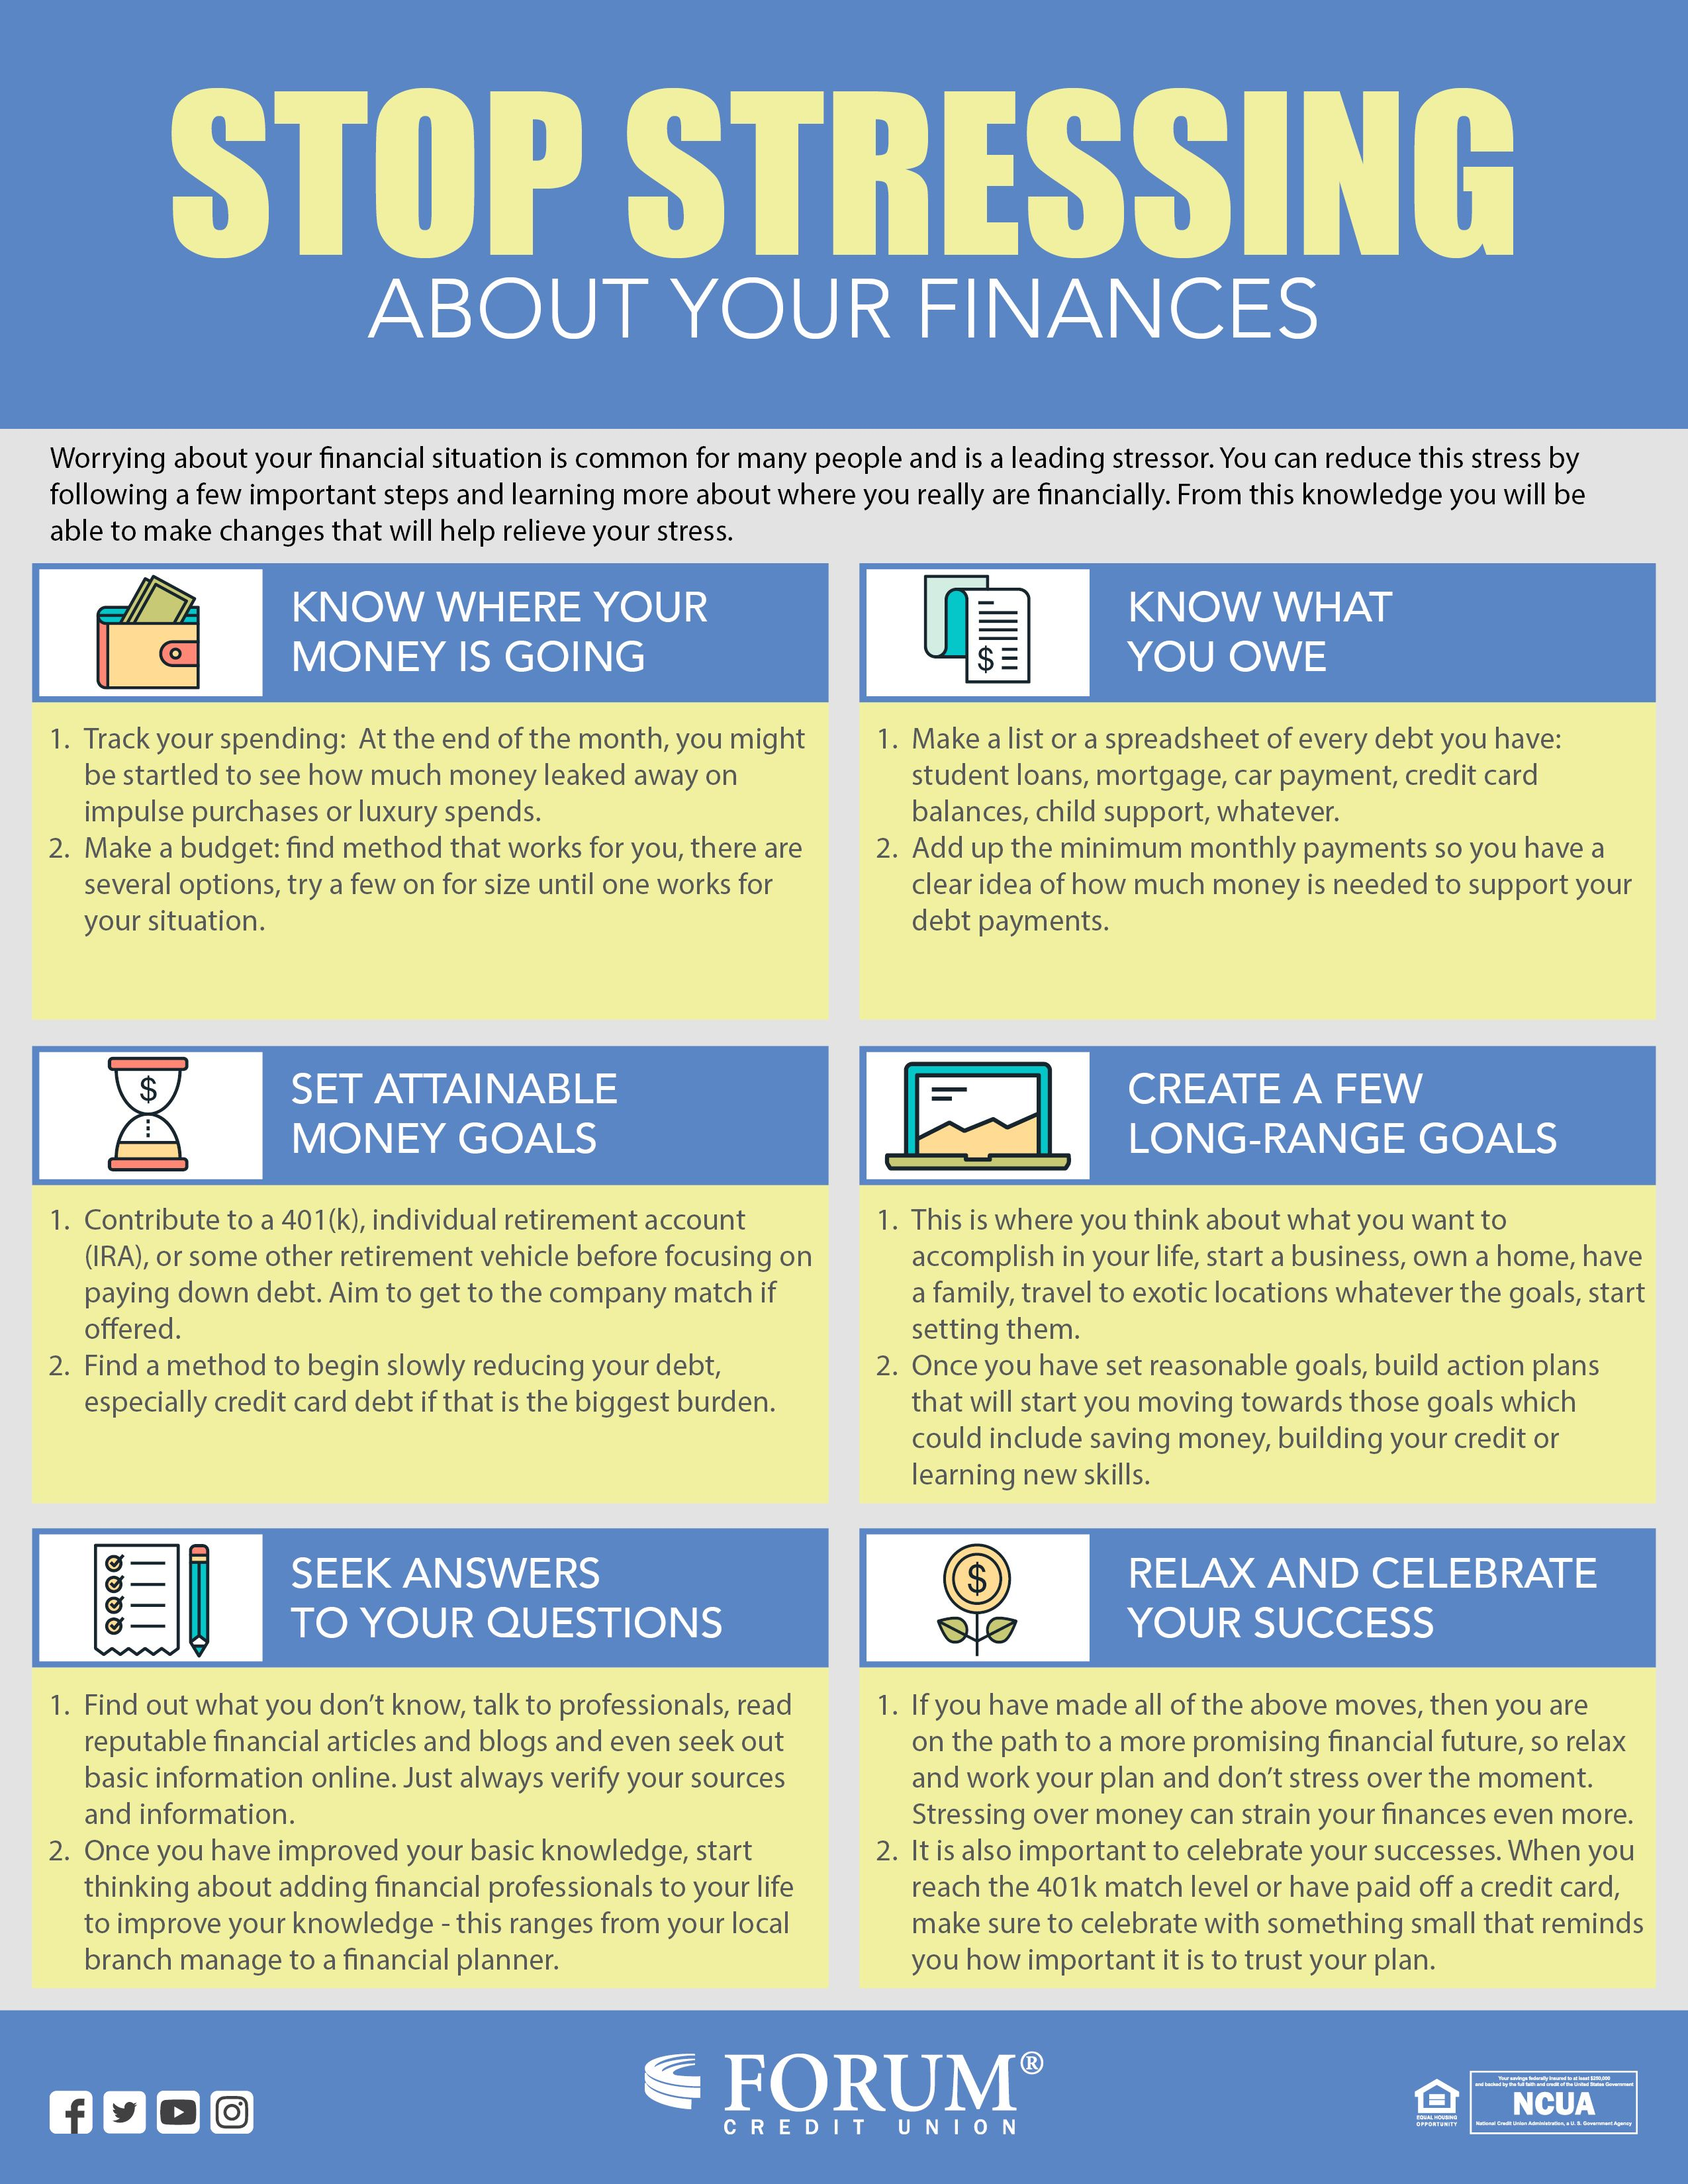 Stop Stressing About Your Finances Forum Credit Union Finance Stress Personal Finance